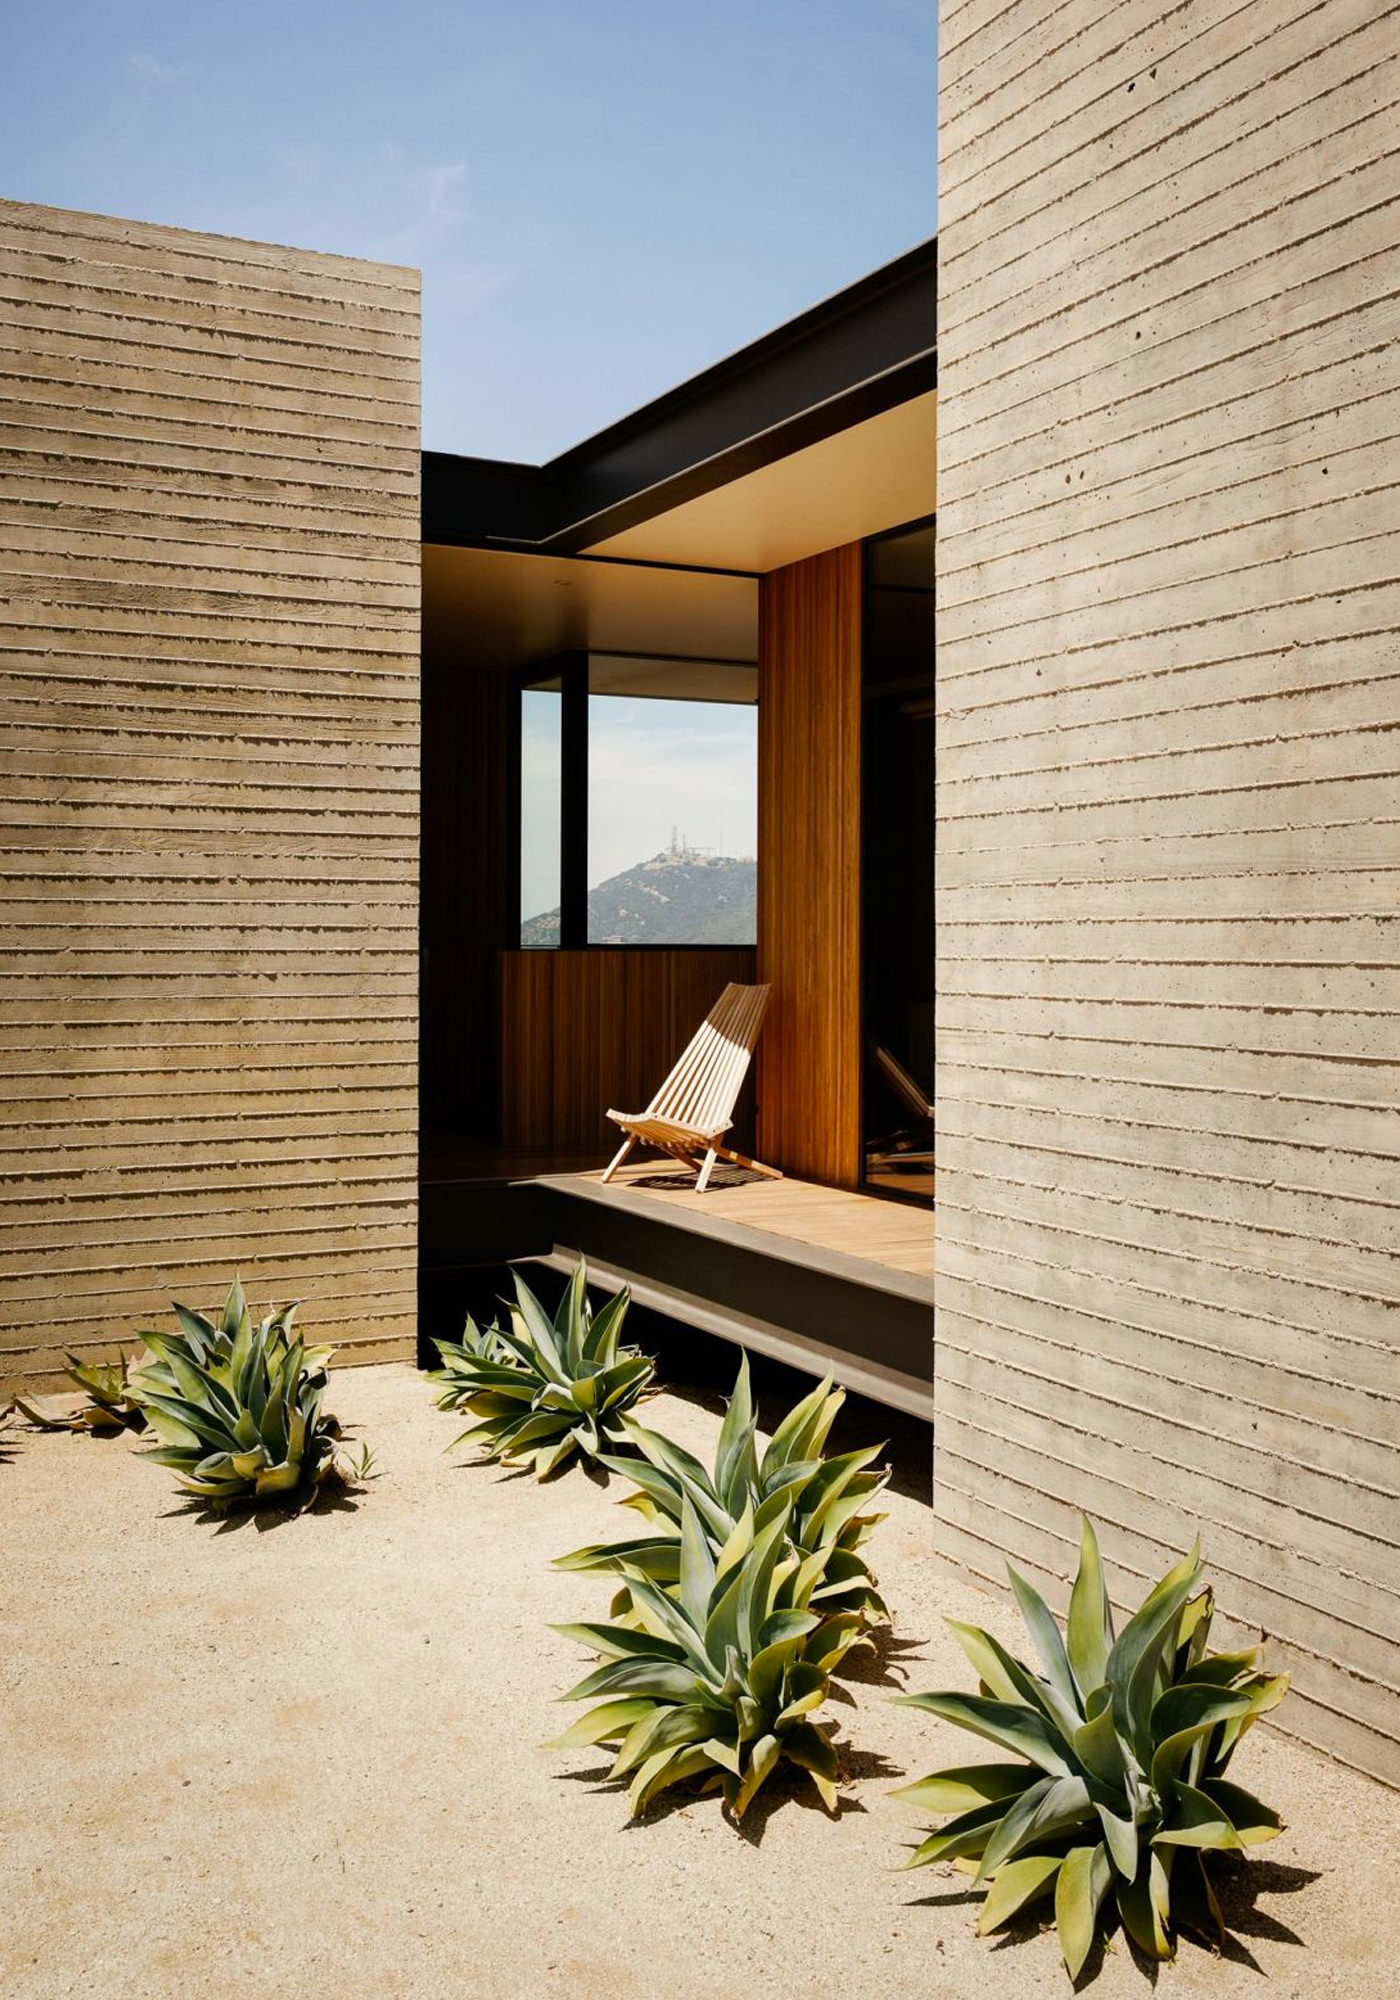 Architecture Californie Maison Saddle Peak House Topanga Canyon